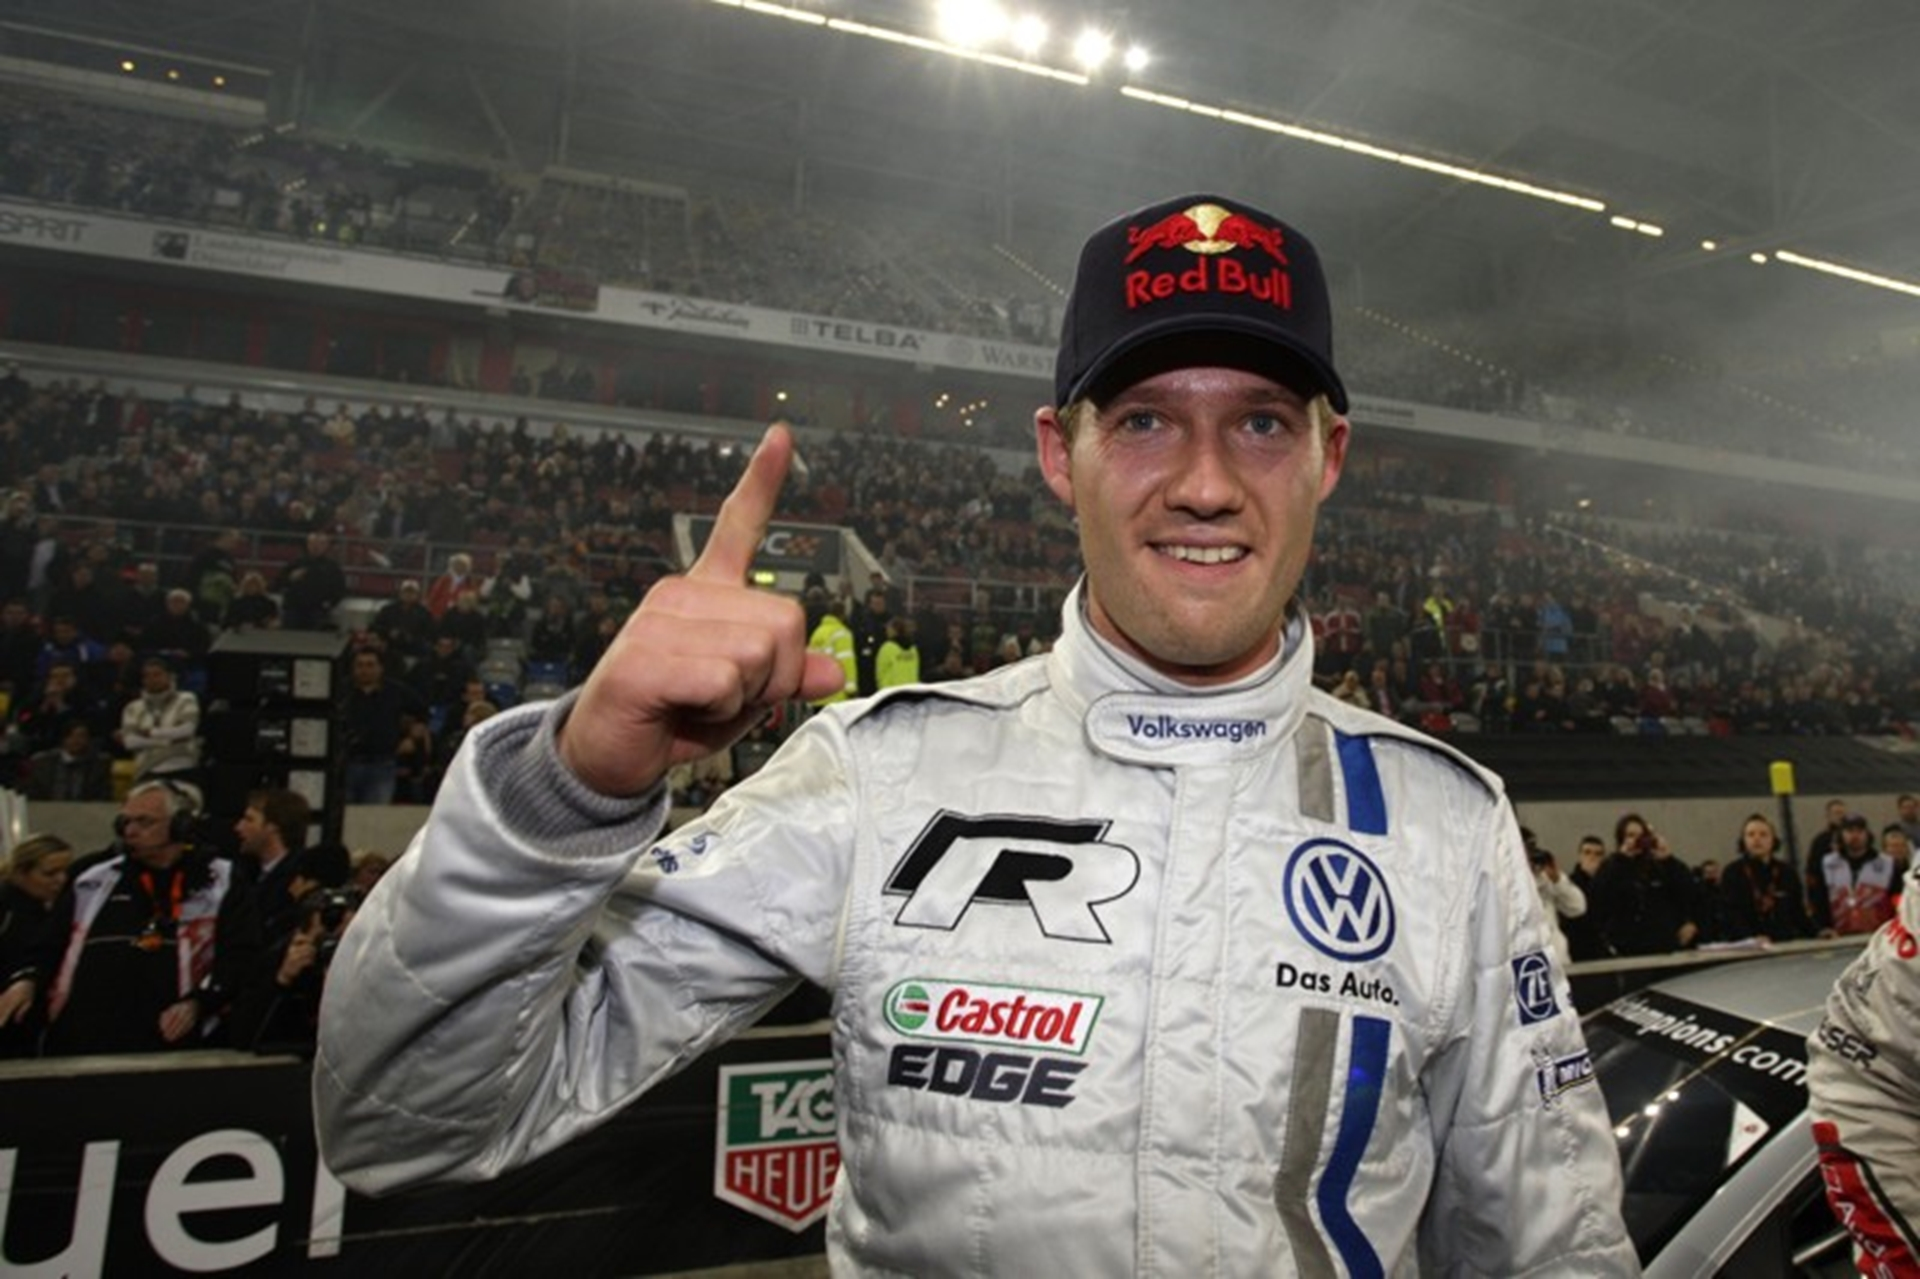 Volkswagen rally star Ogier is Champion of Champions